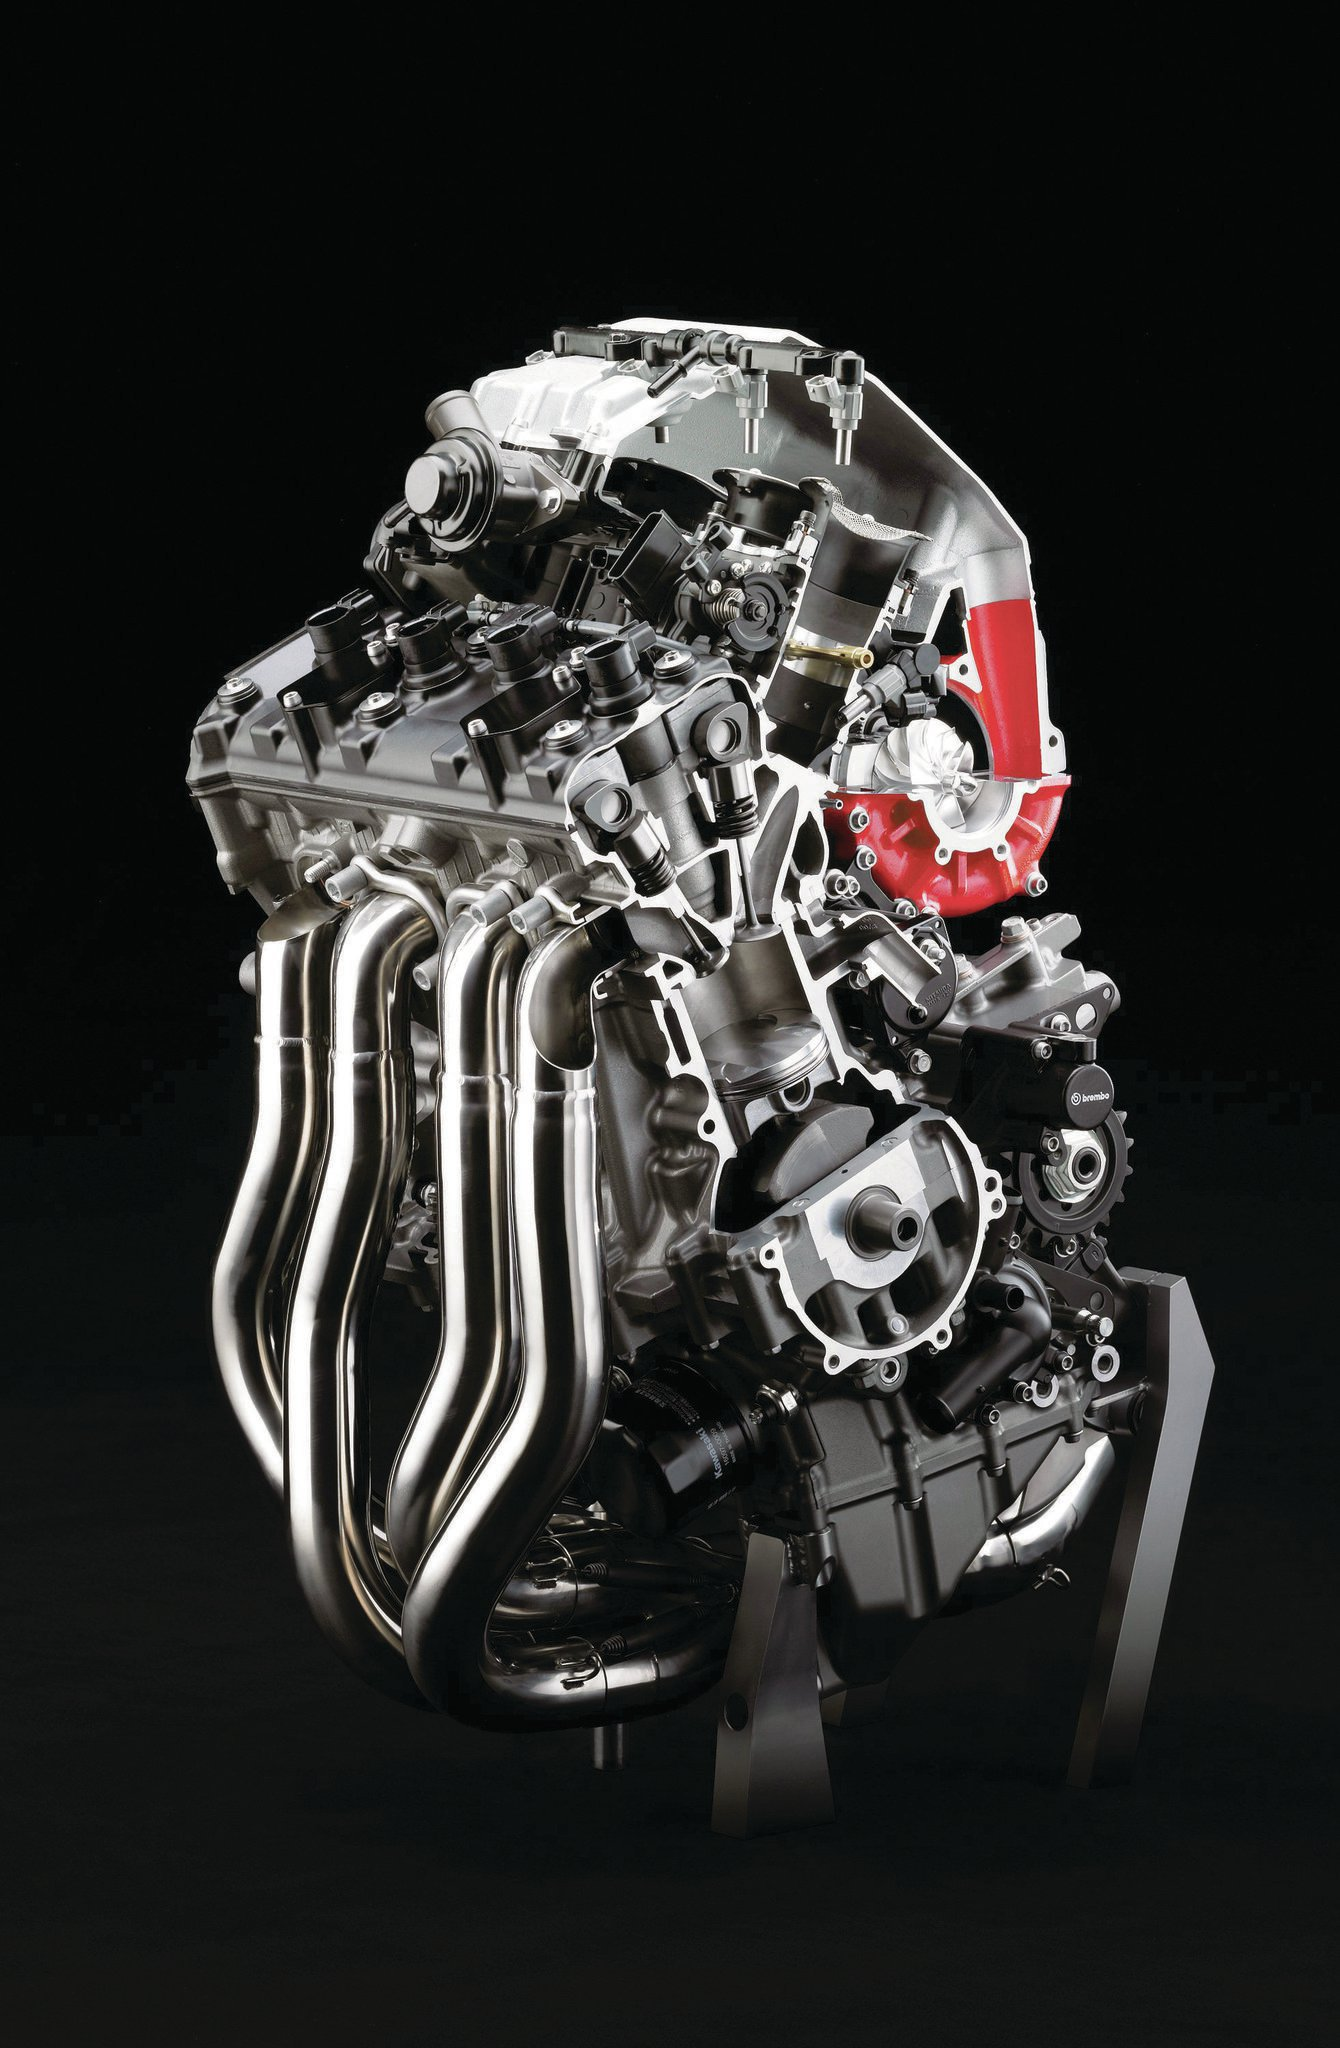 The 60.9ci (2.99-inch bore x 2.17-inch stroke), liquid-cooled, inline-four cylinder engine has a 8.3:1 compression ratio.